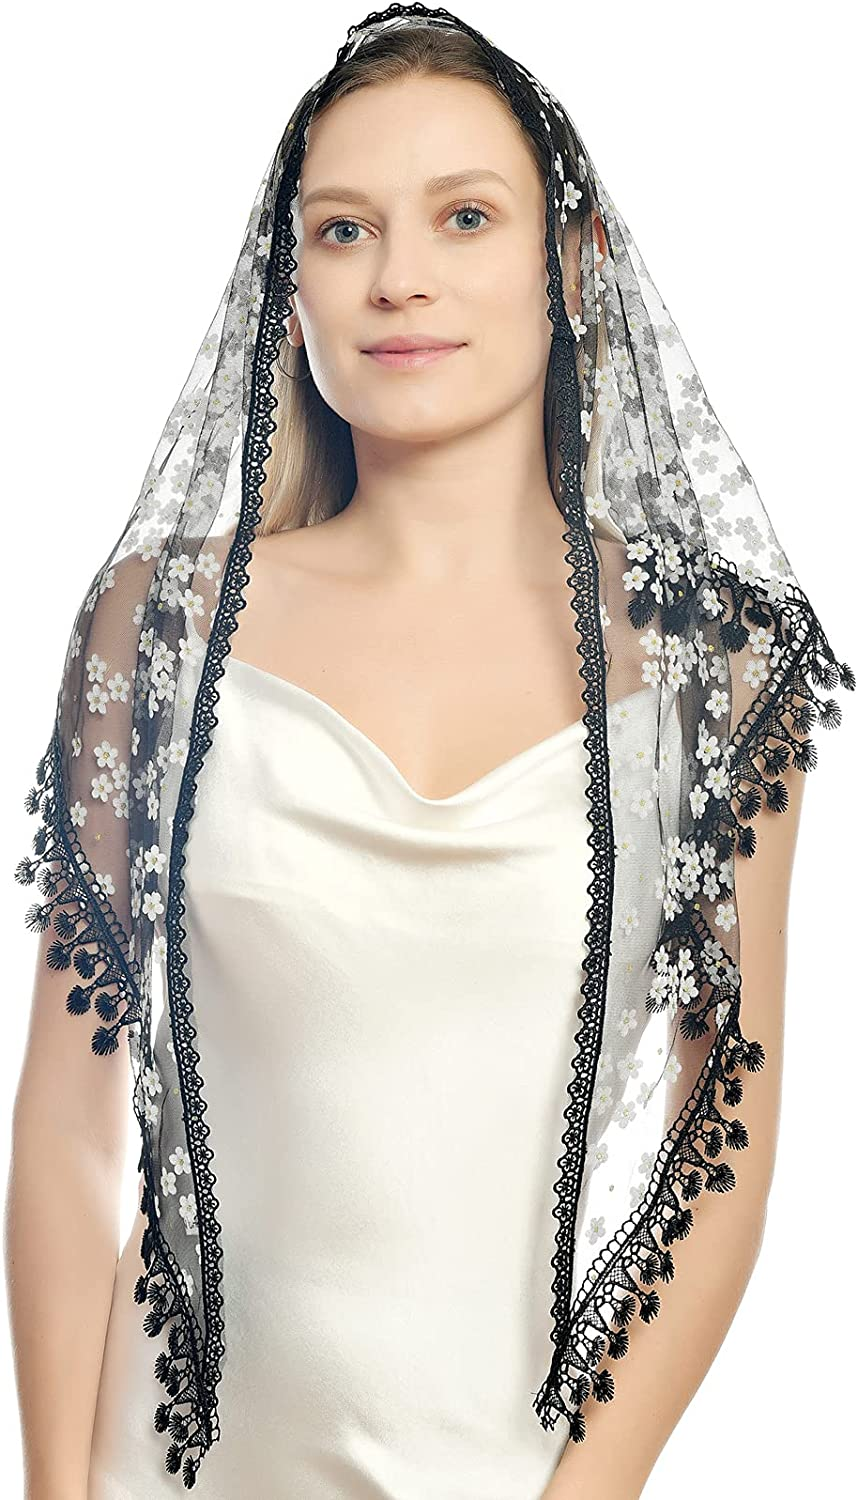 Triangle Lace Veil Mantilla Cathedral Head Covering Chapel Veil for Mass Wedding Scarf Shawl Mass Head Covering